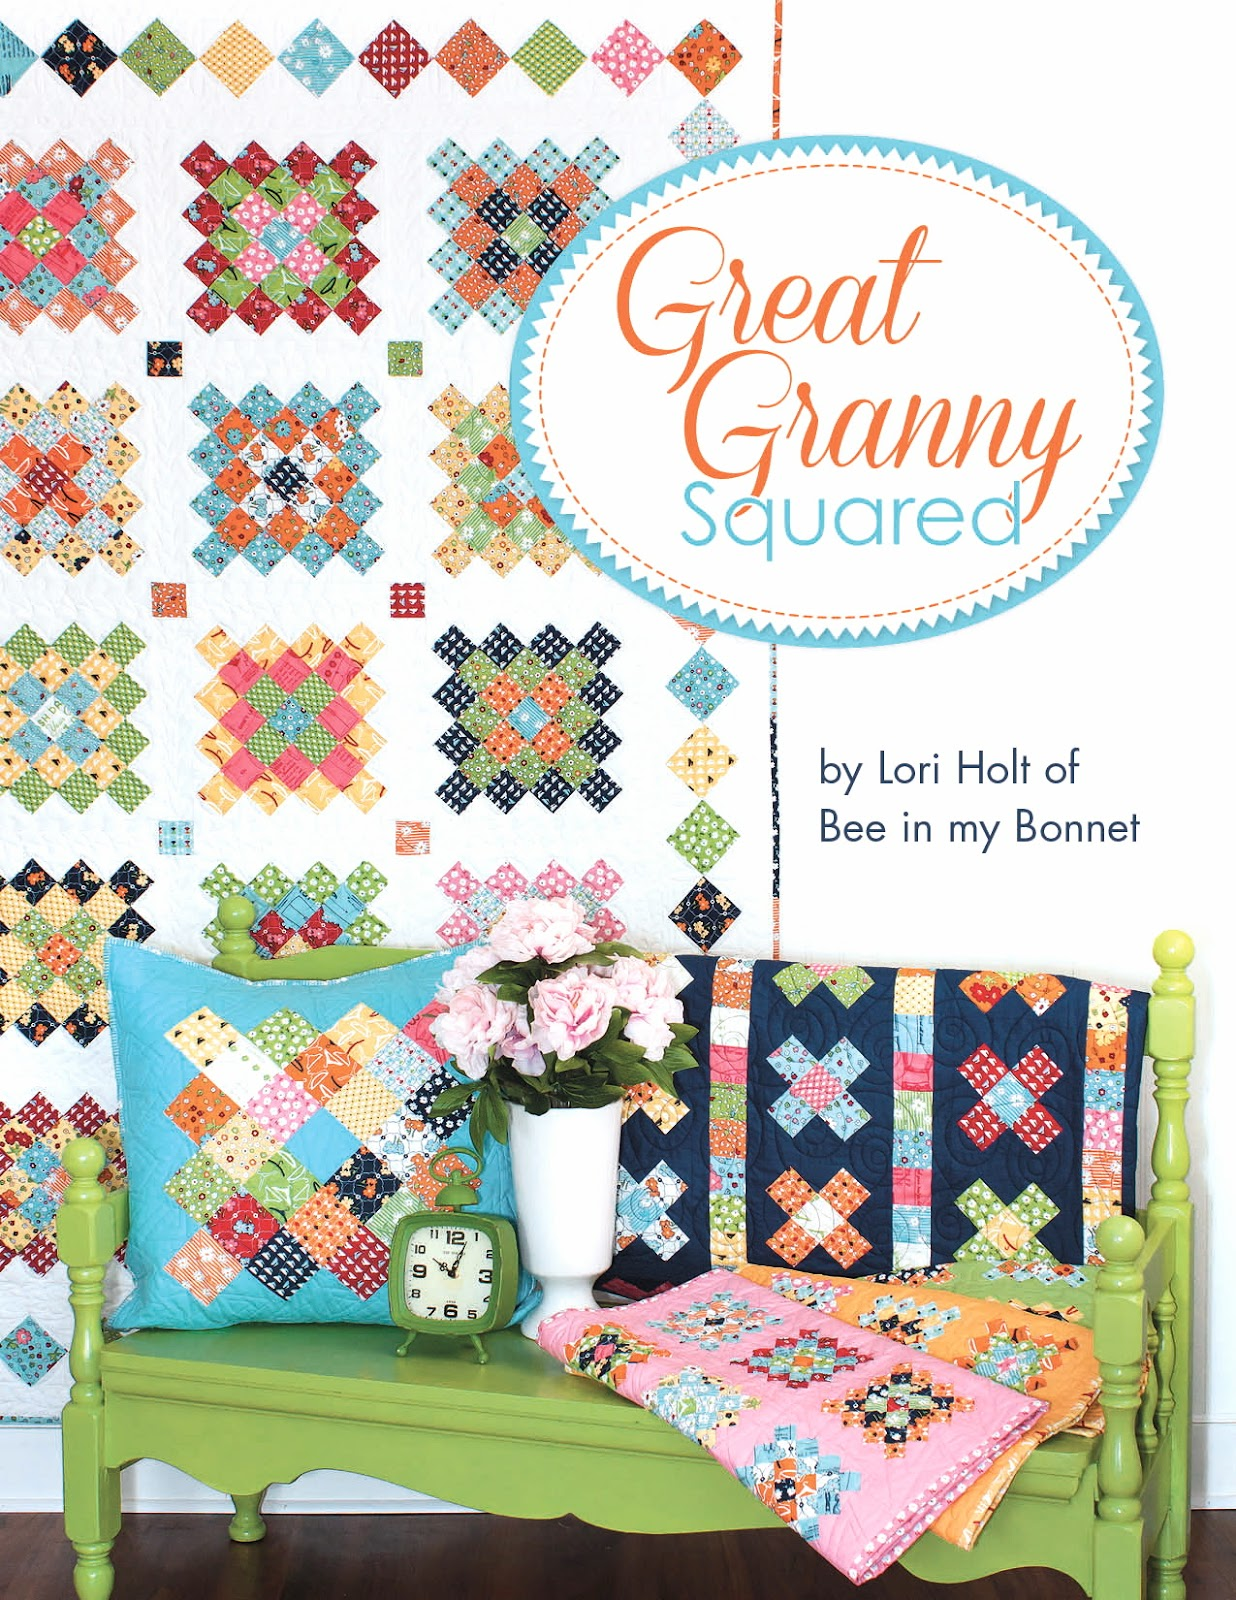 great granny squared by lori holt of bee in my bonnet quilt pattern lori holt 2014 05 03